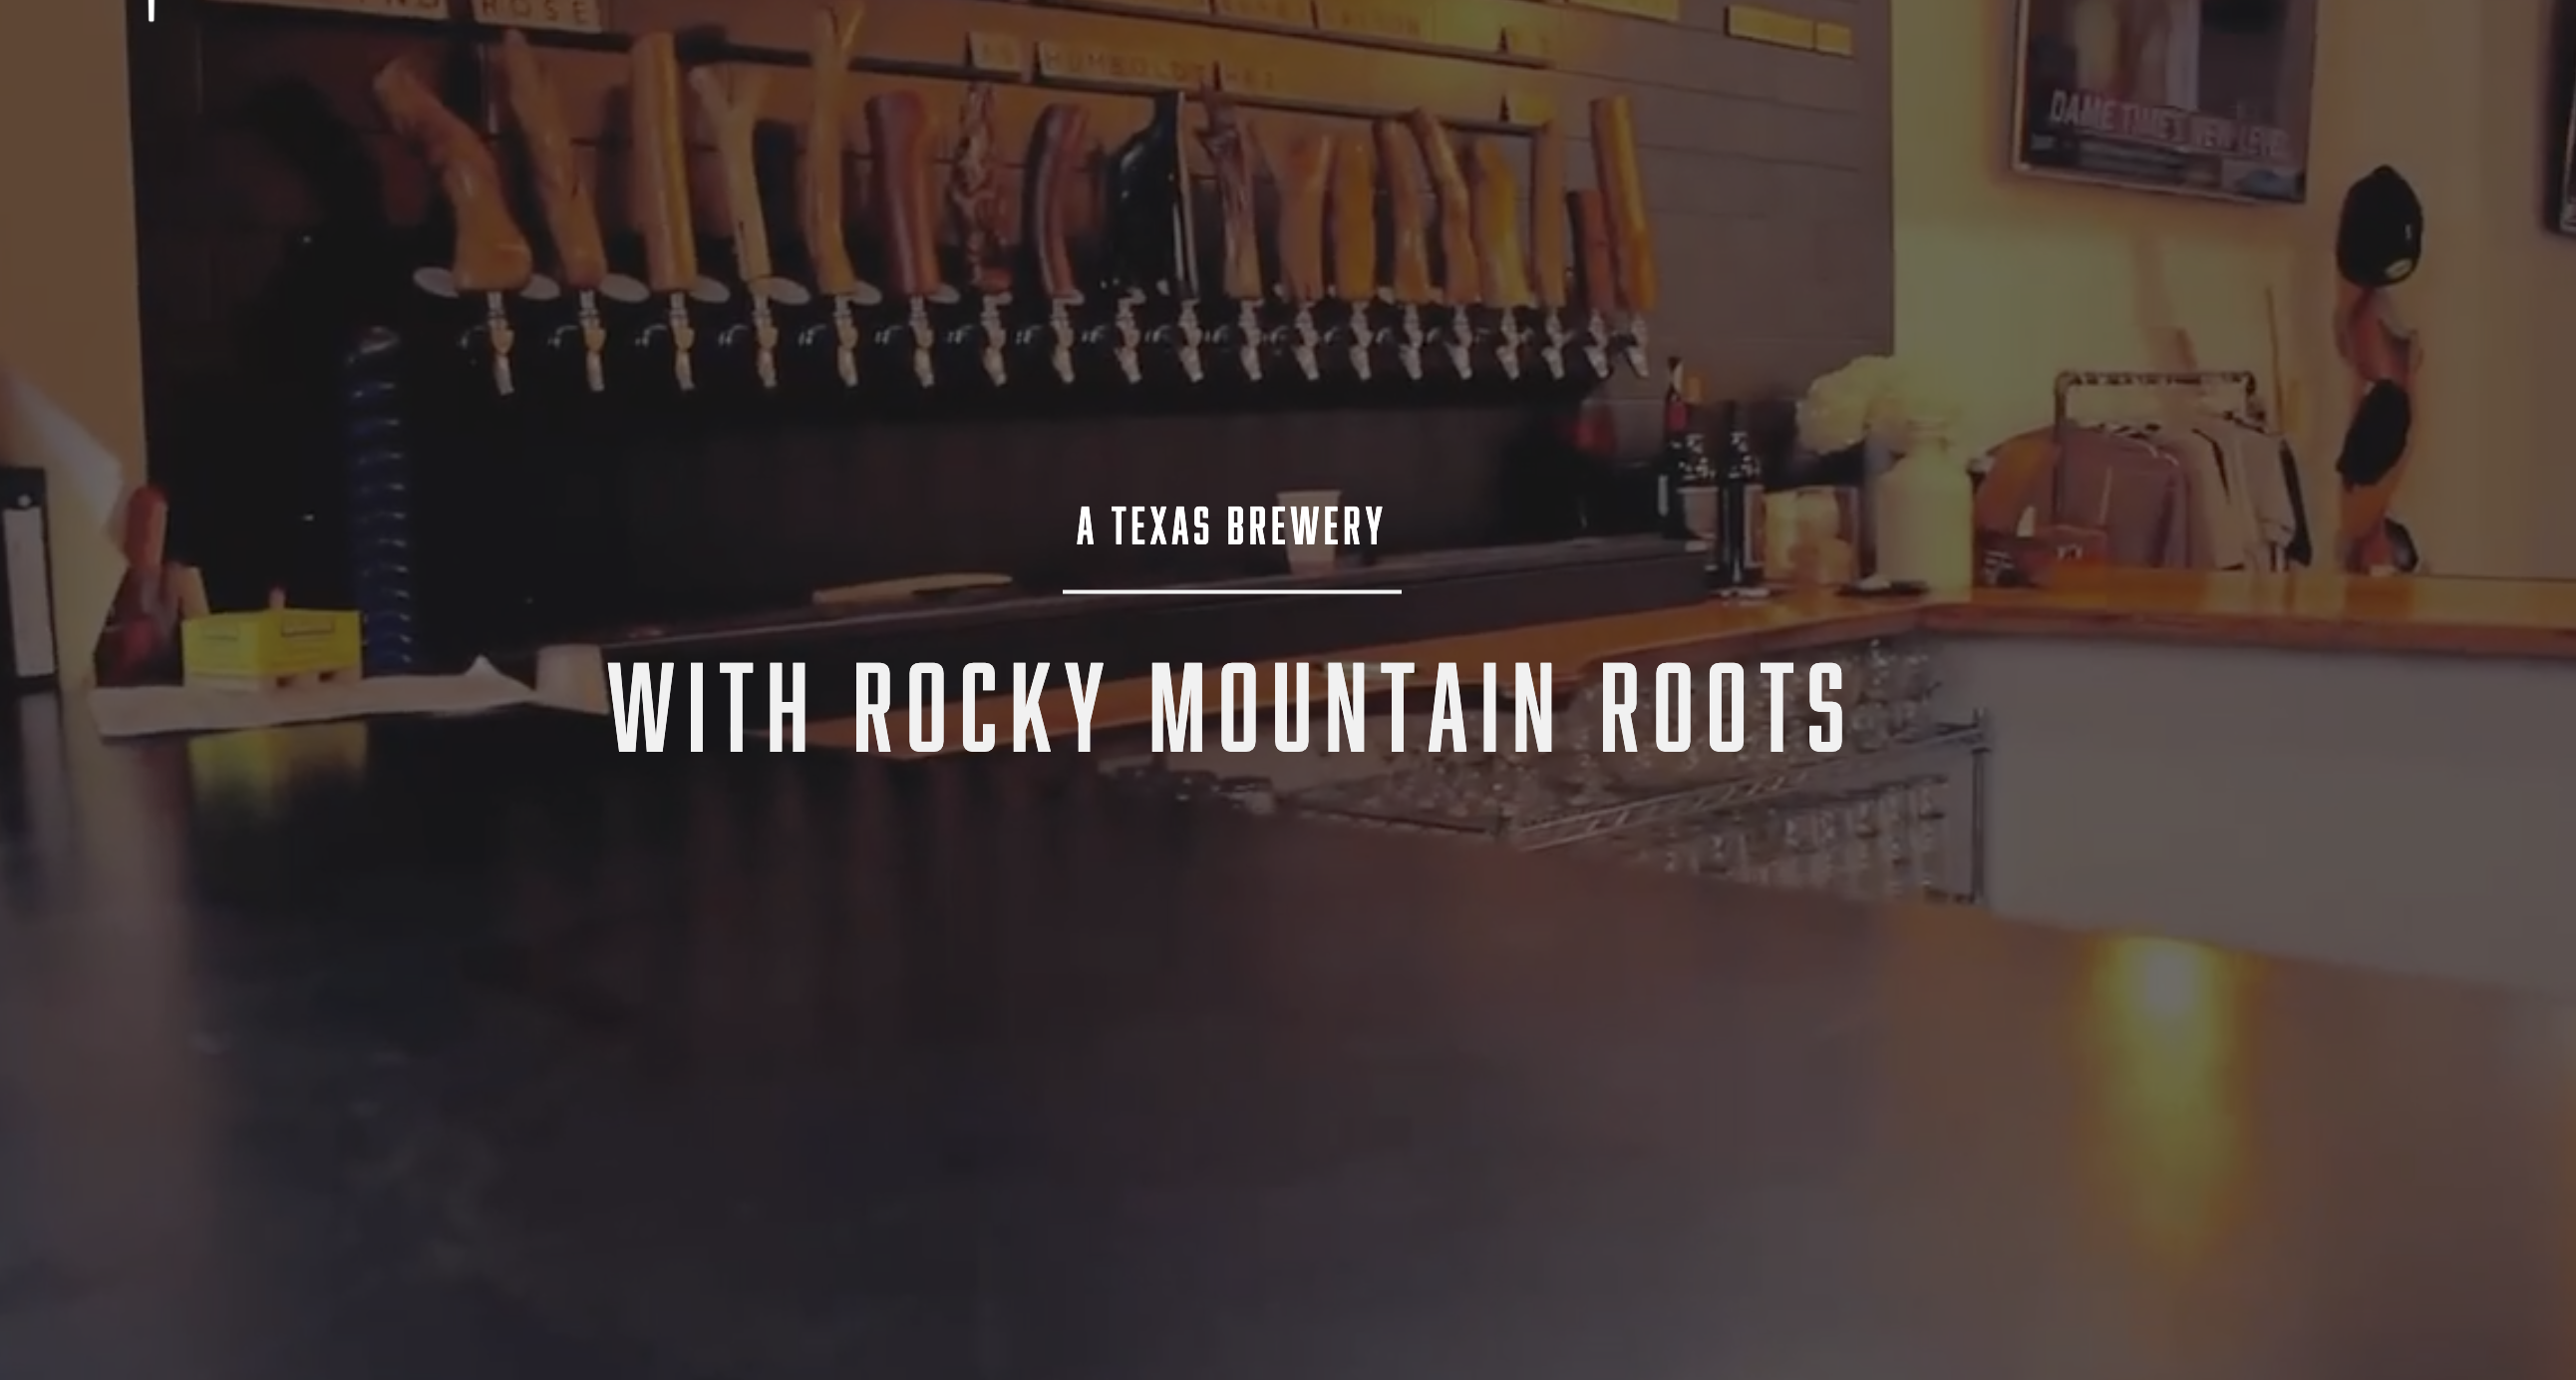 WITH ROCKY MOUNTAIN ROOTS